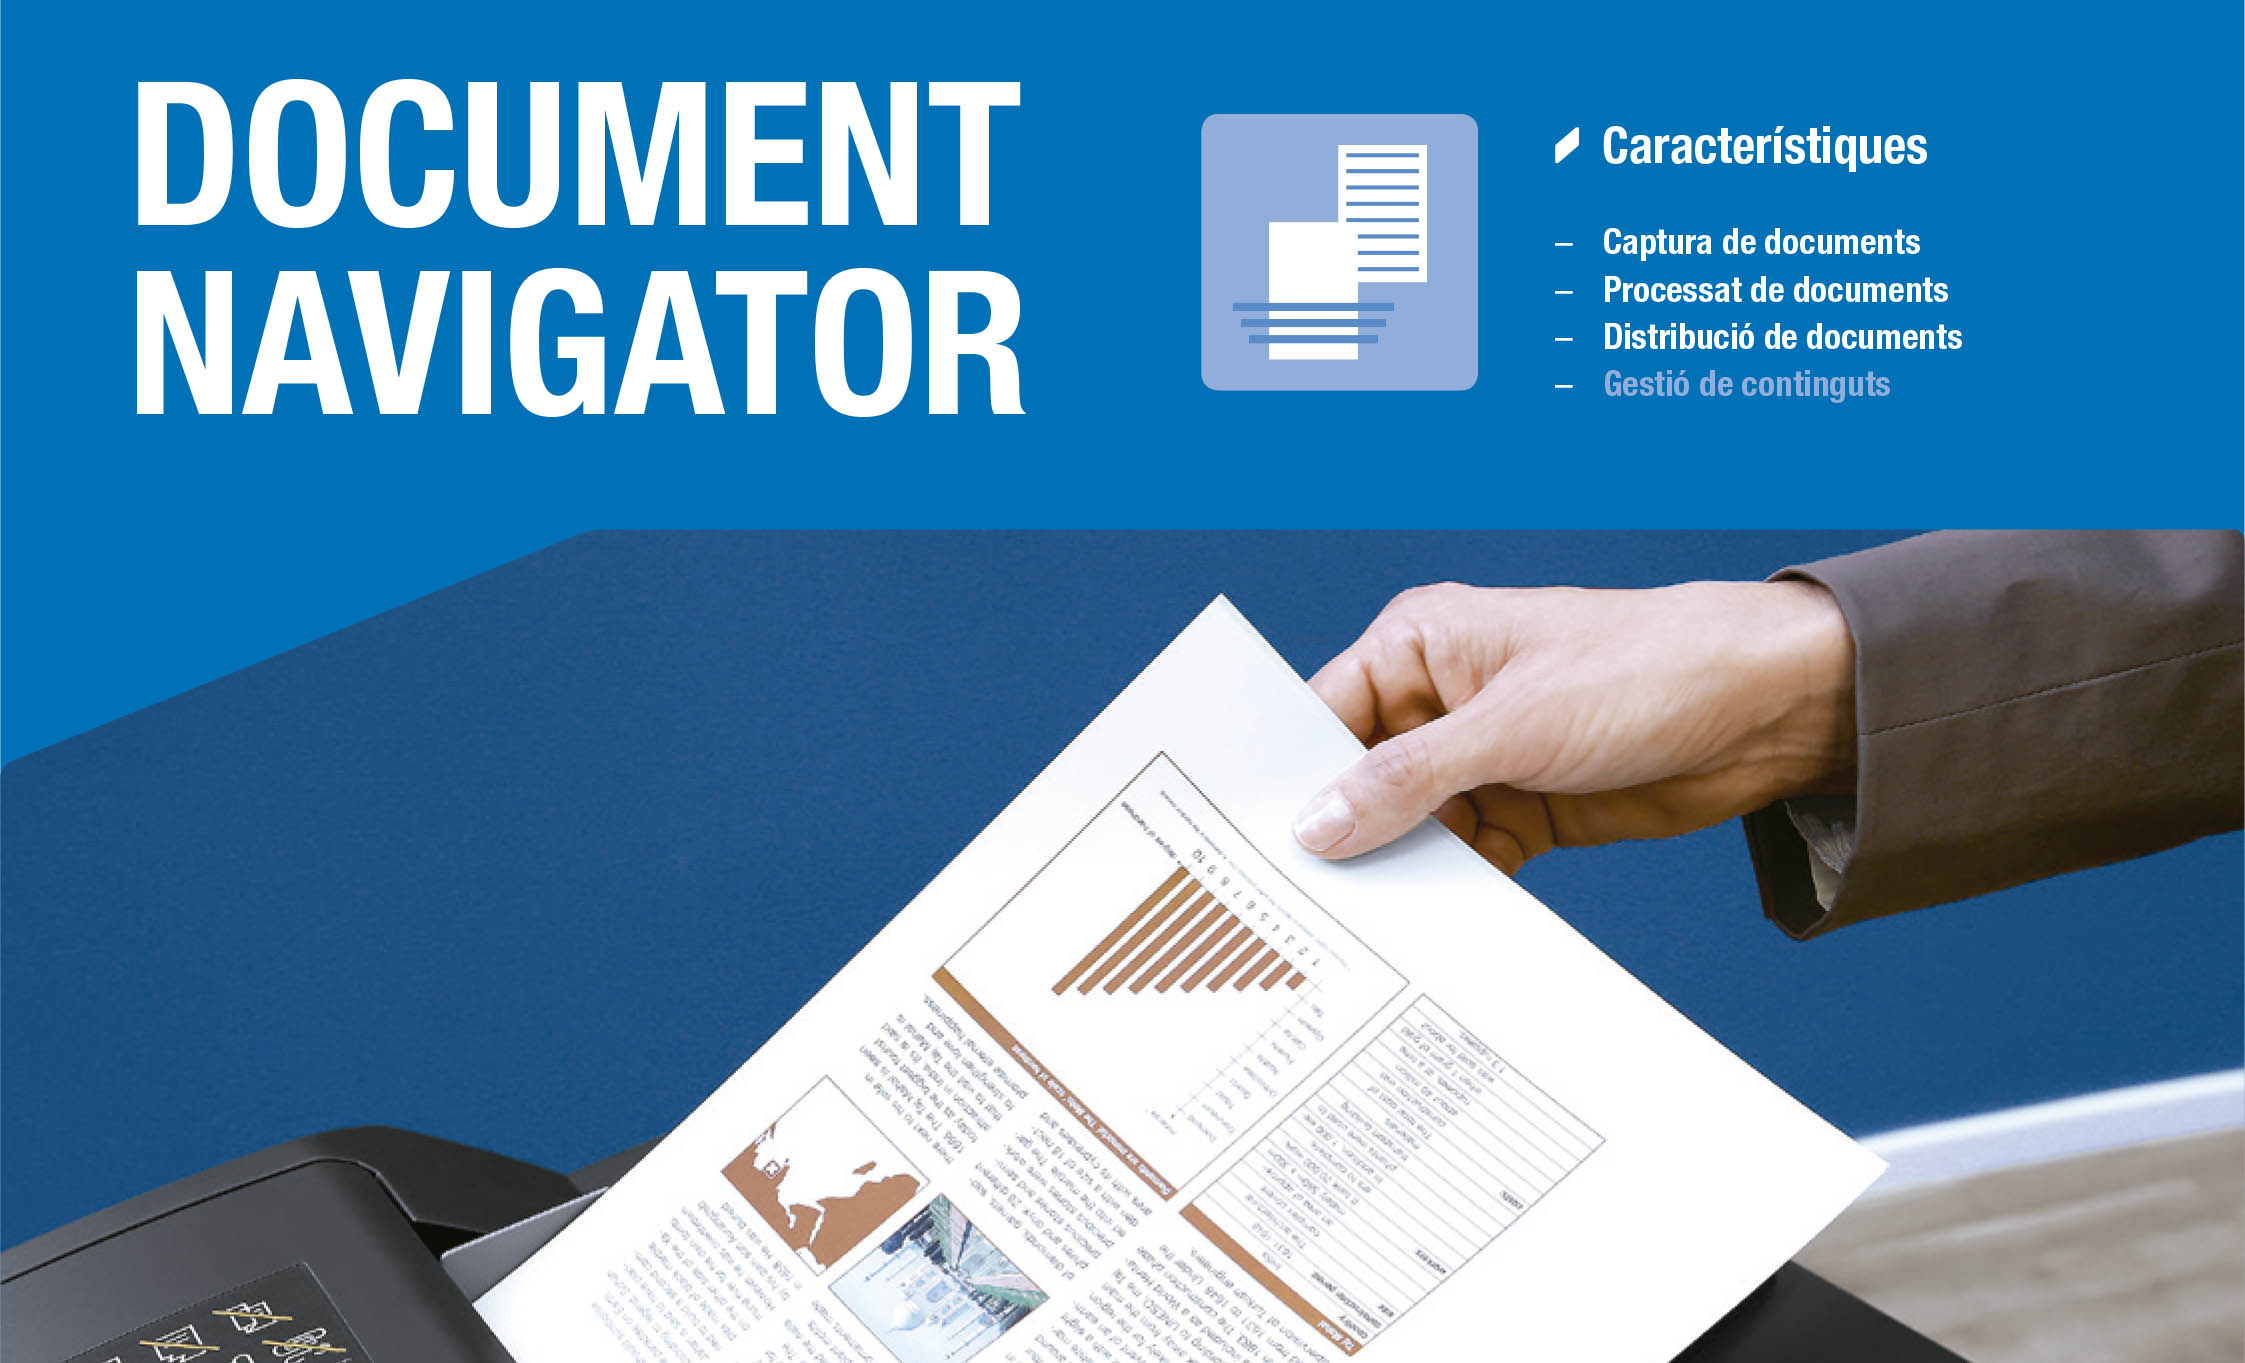 DOCUMENT NAVIGATOR: 2018 PICK AWARD